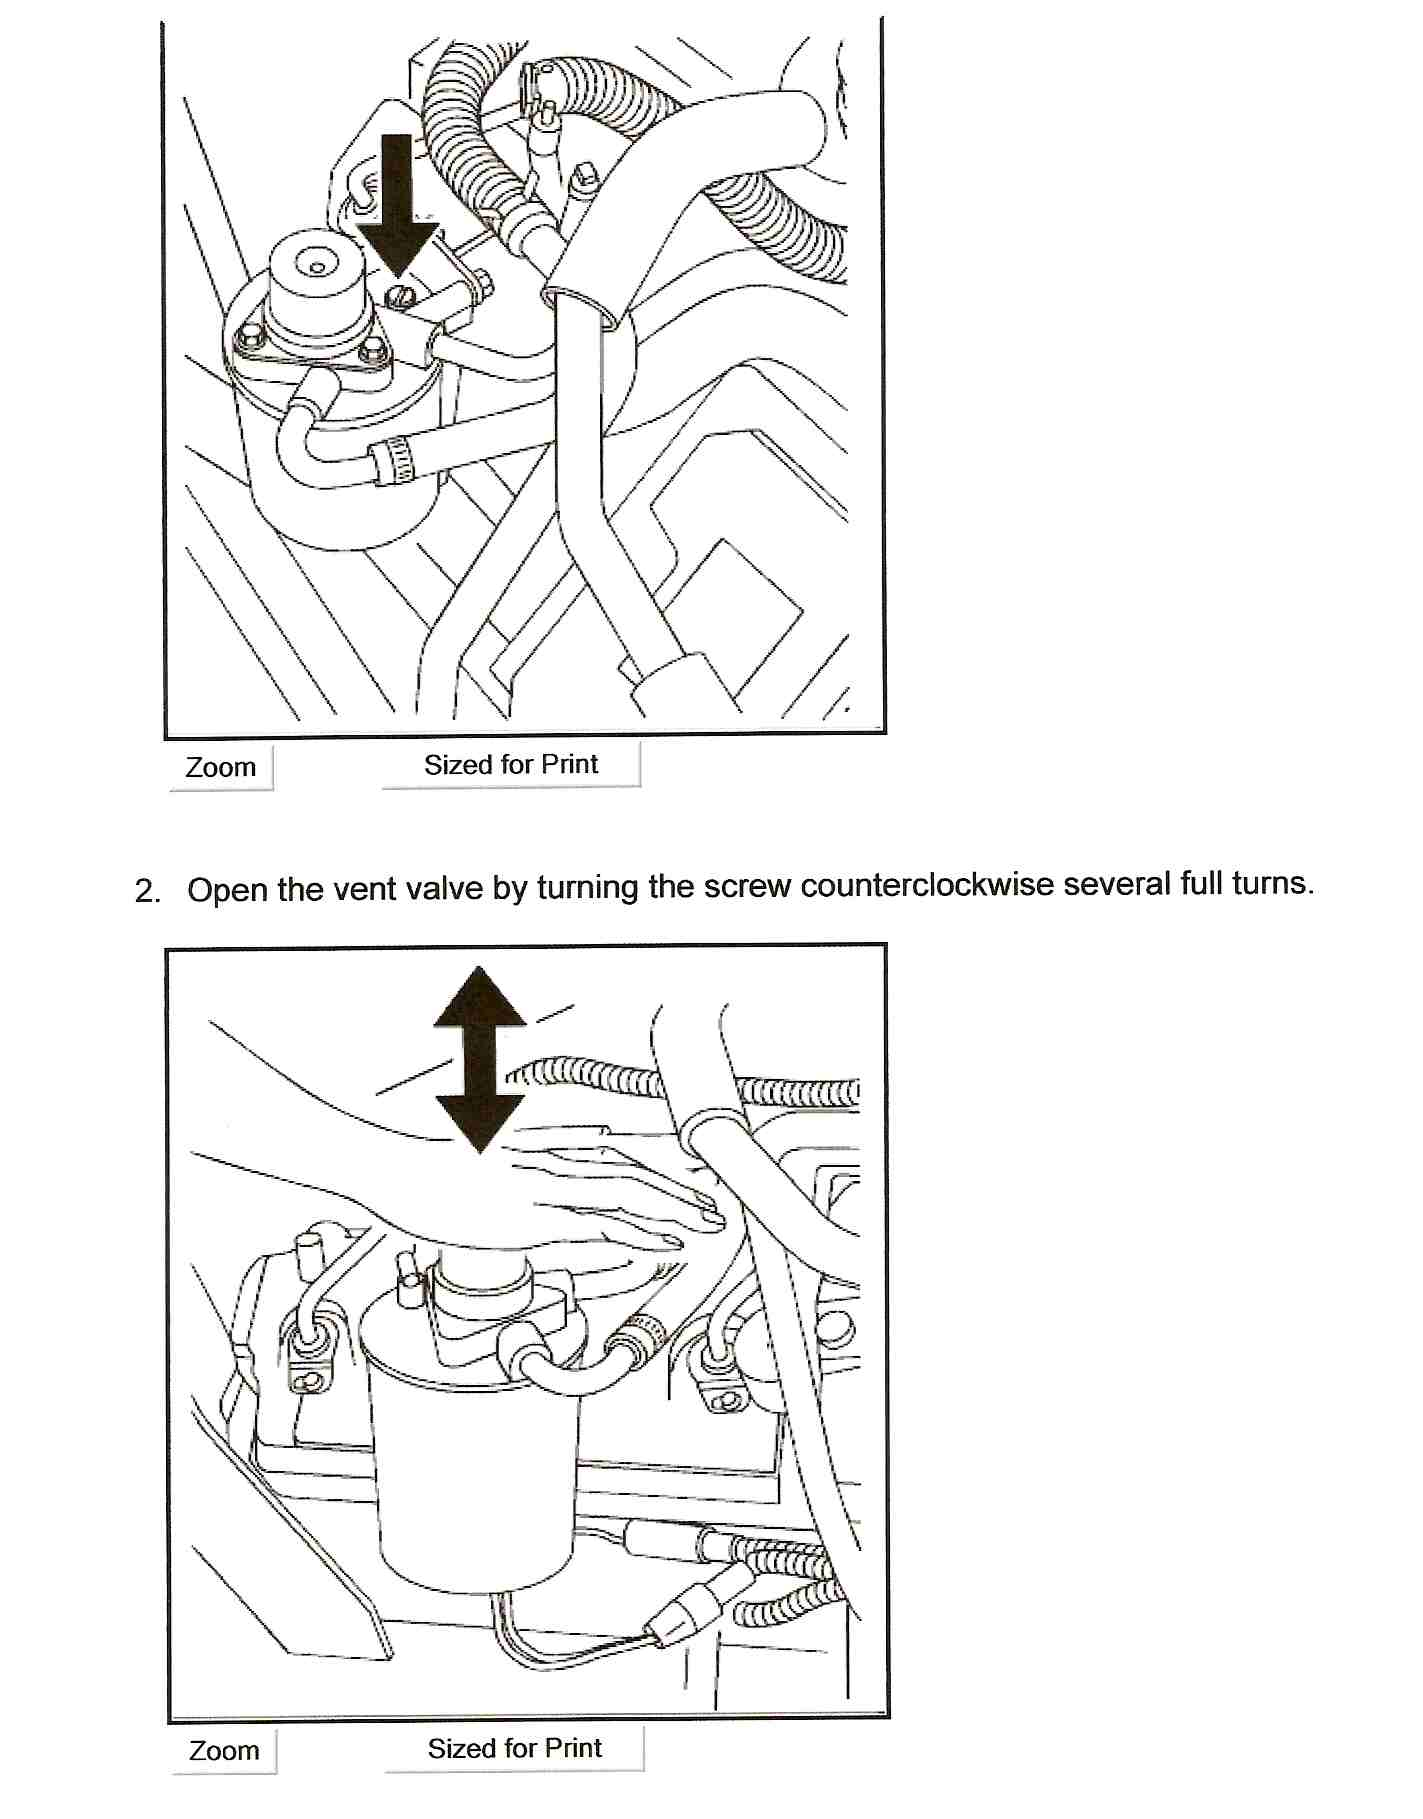 Duramax Fuel Filter Housing Problems Wiring Diagram Database 02 Why Will My 2003 Chevy 4500 6 Diesle Not Fire To Start Assembly